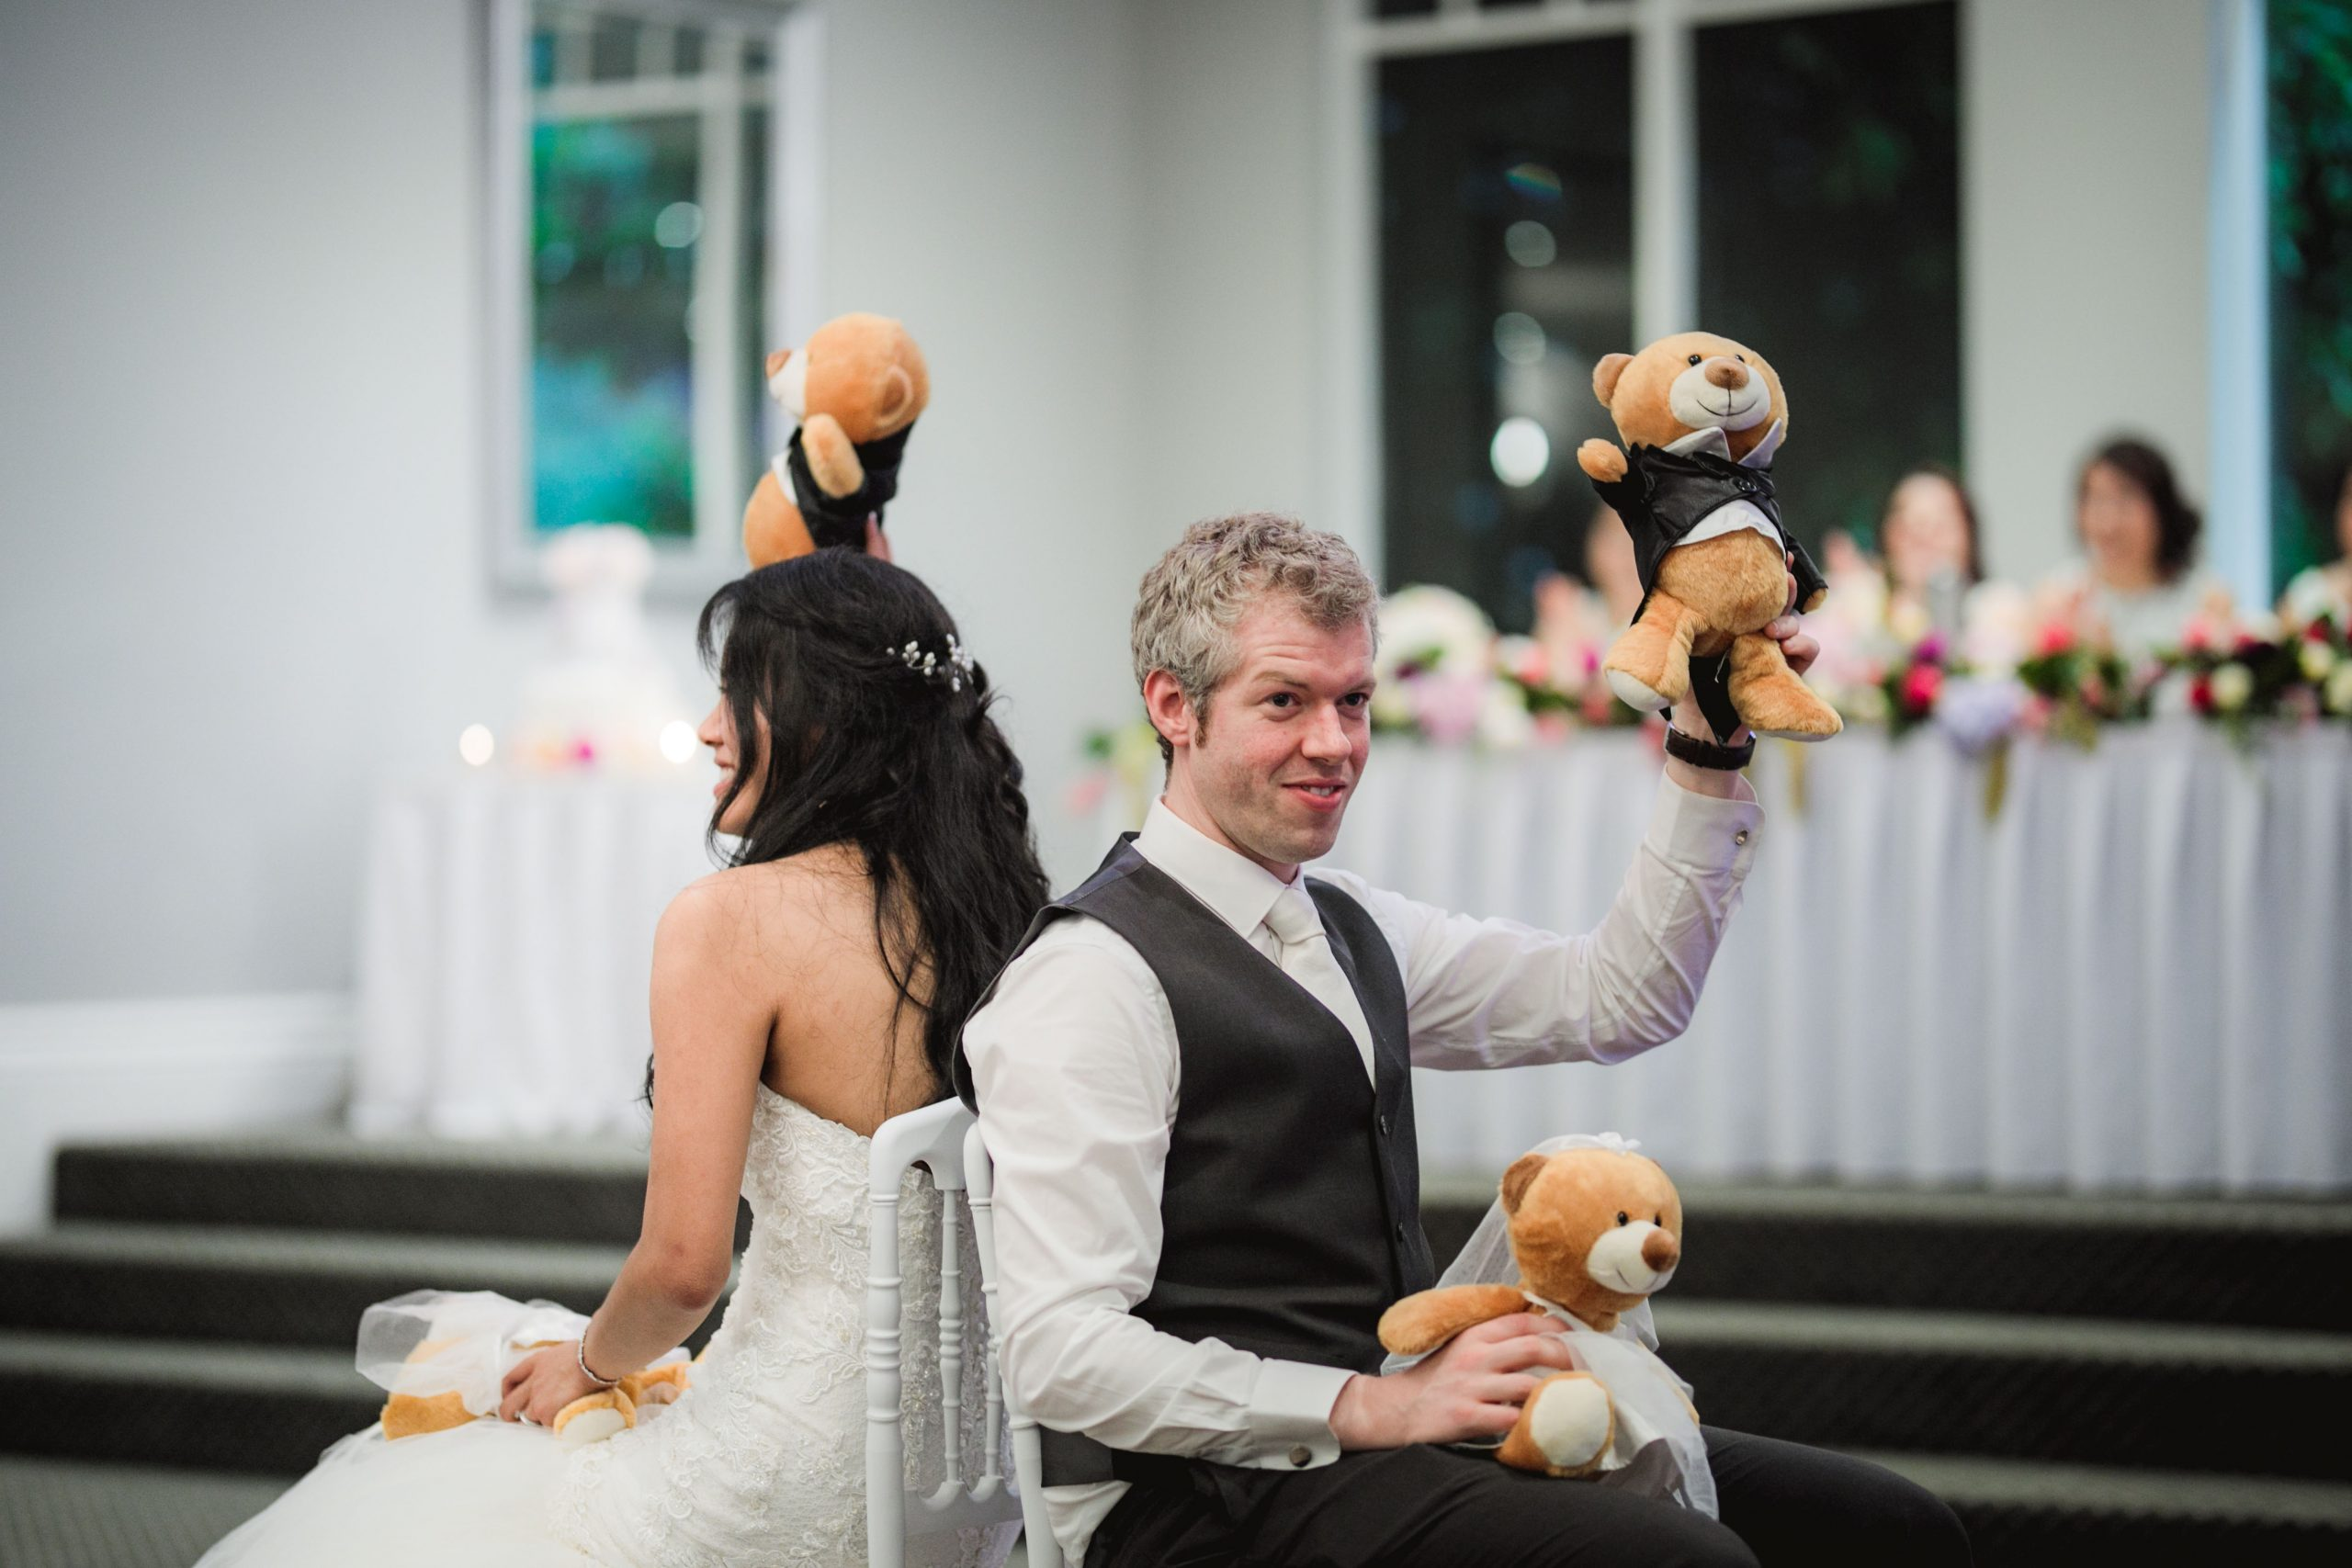 Bride and groom sitting back to back holding teddy bears